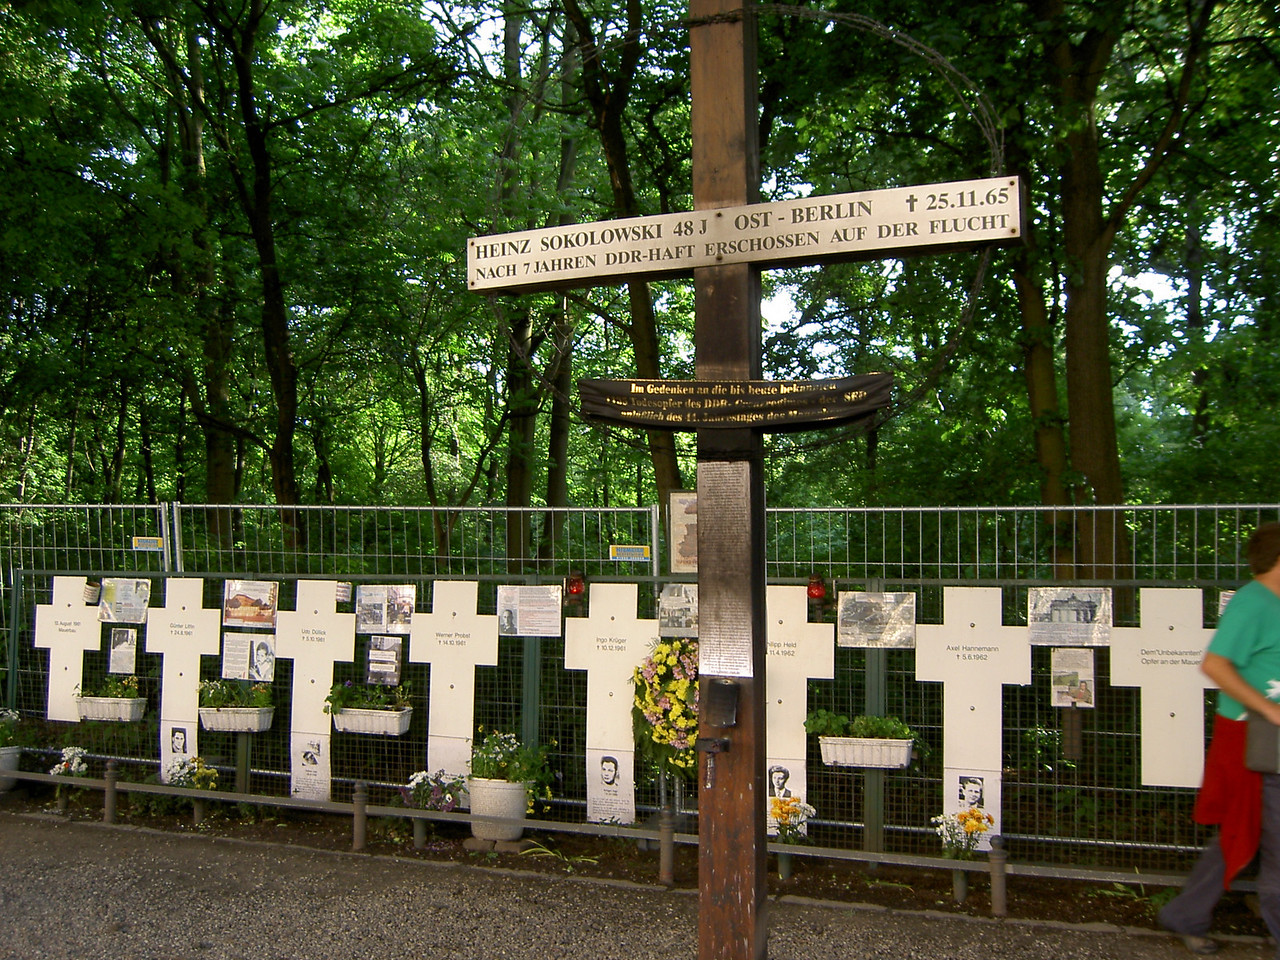 Memorial to people who died trying to get to West Germany